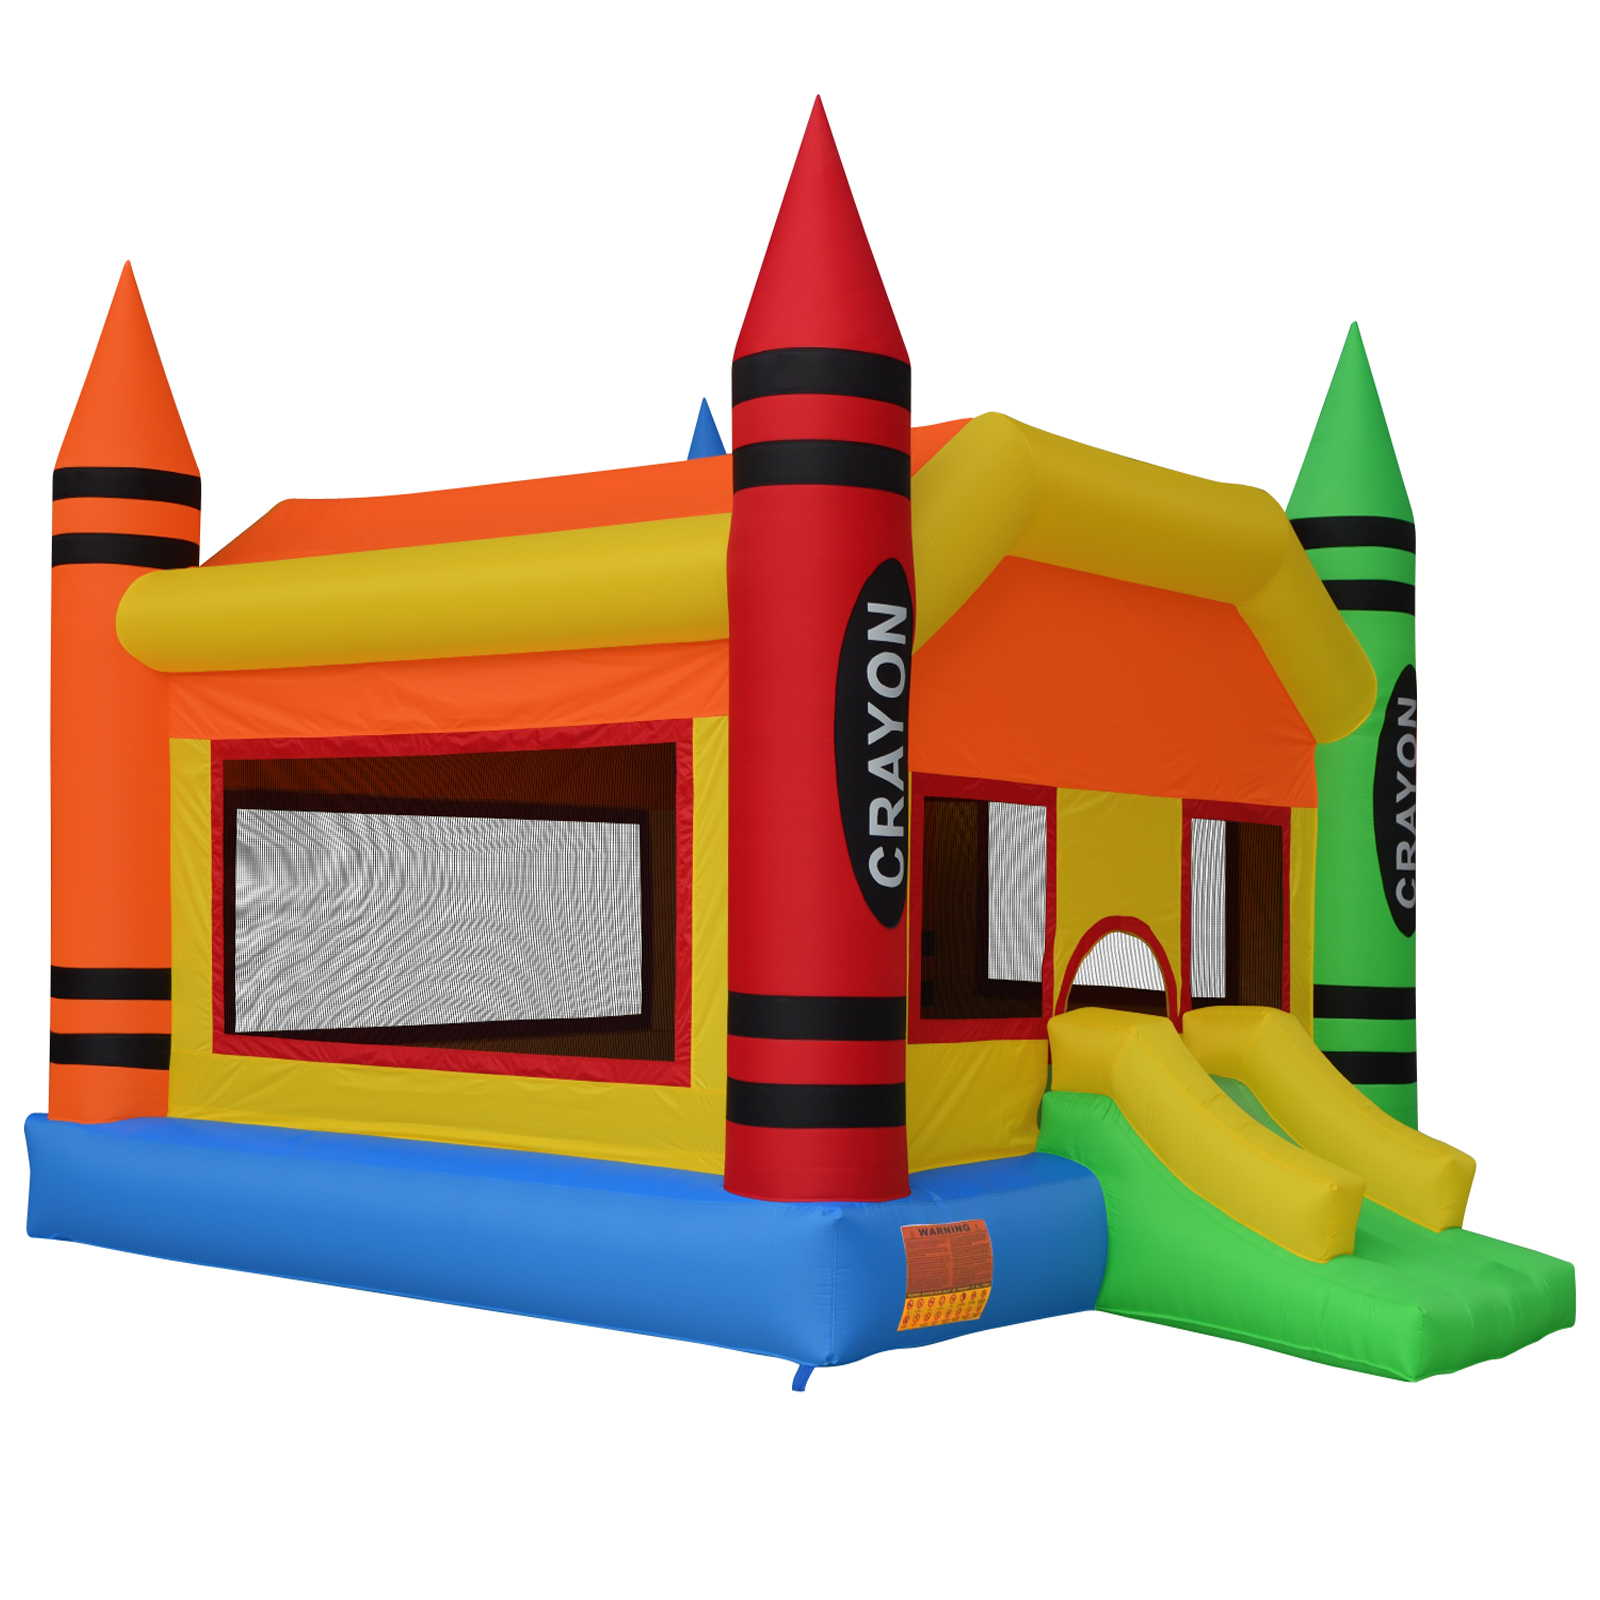 Cloud Nine The Crayon Bounce House - Large Inflatable Bou...